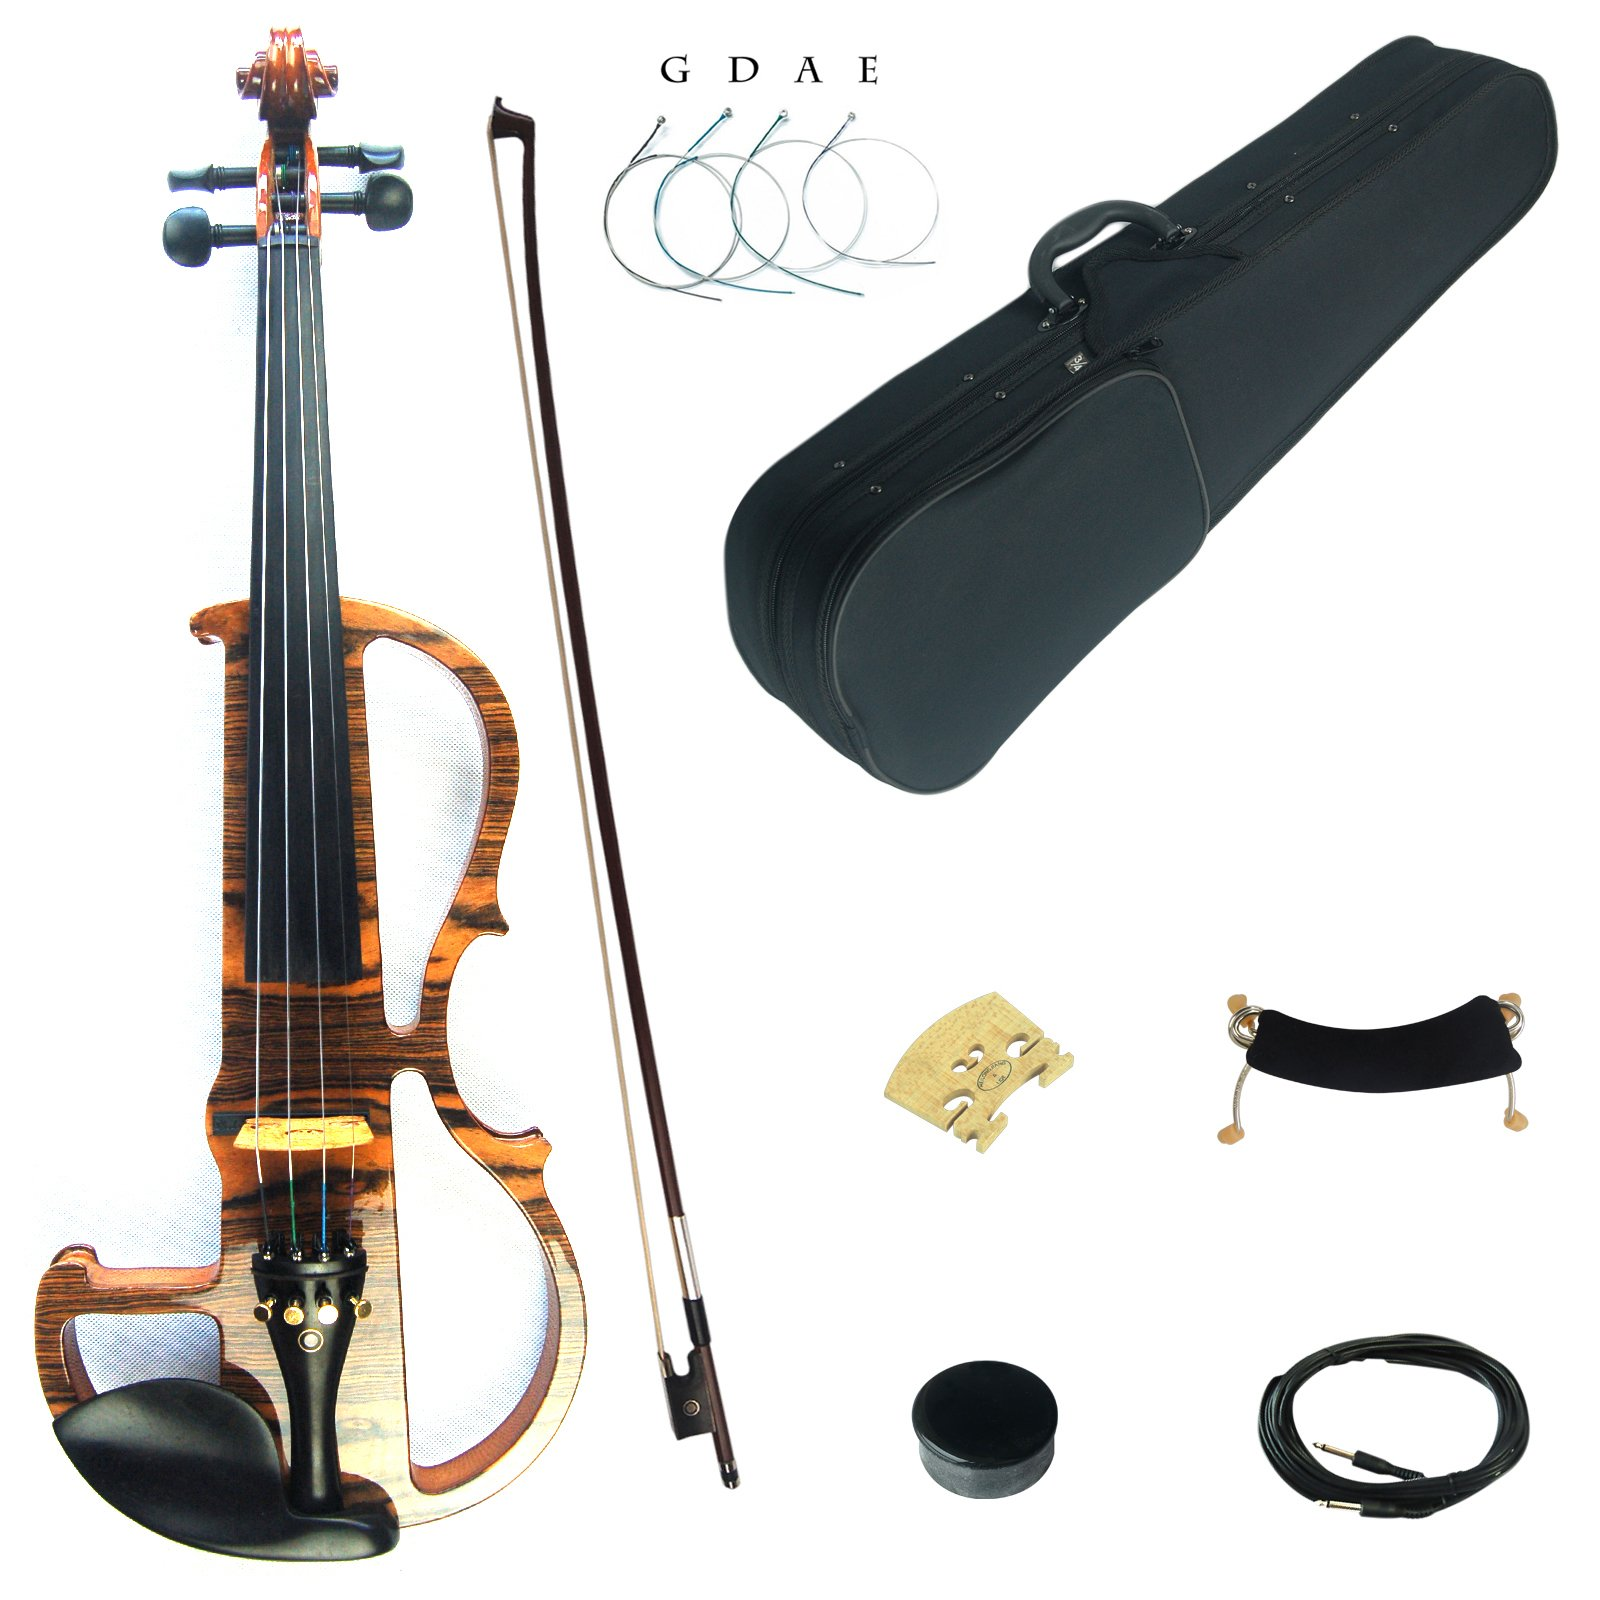 Kinglos 4/4 Solid Wood Advanced Wood Grain Electric/Silent Violin Kit with Ebony Fittings Full Size (MWDS1902)